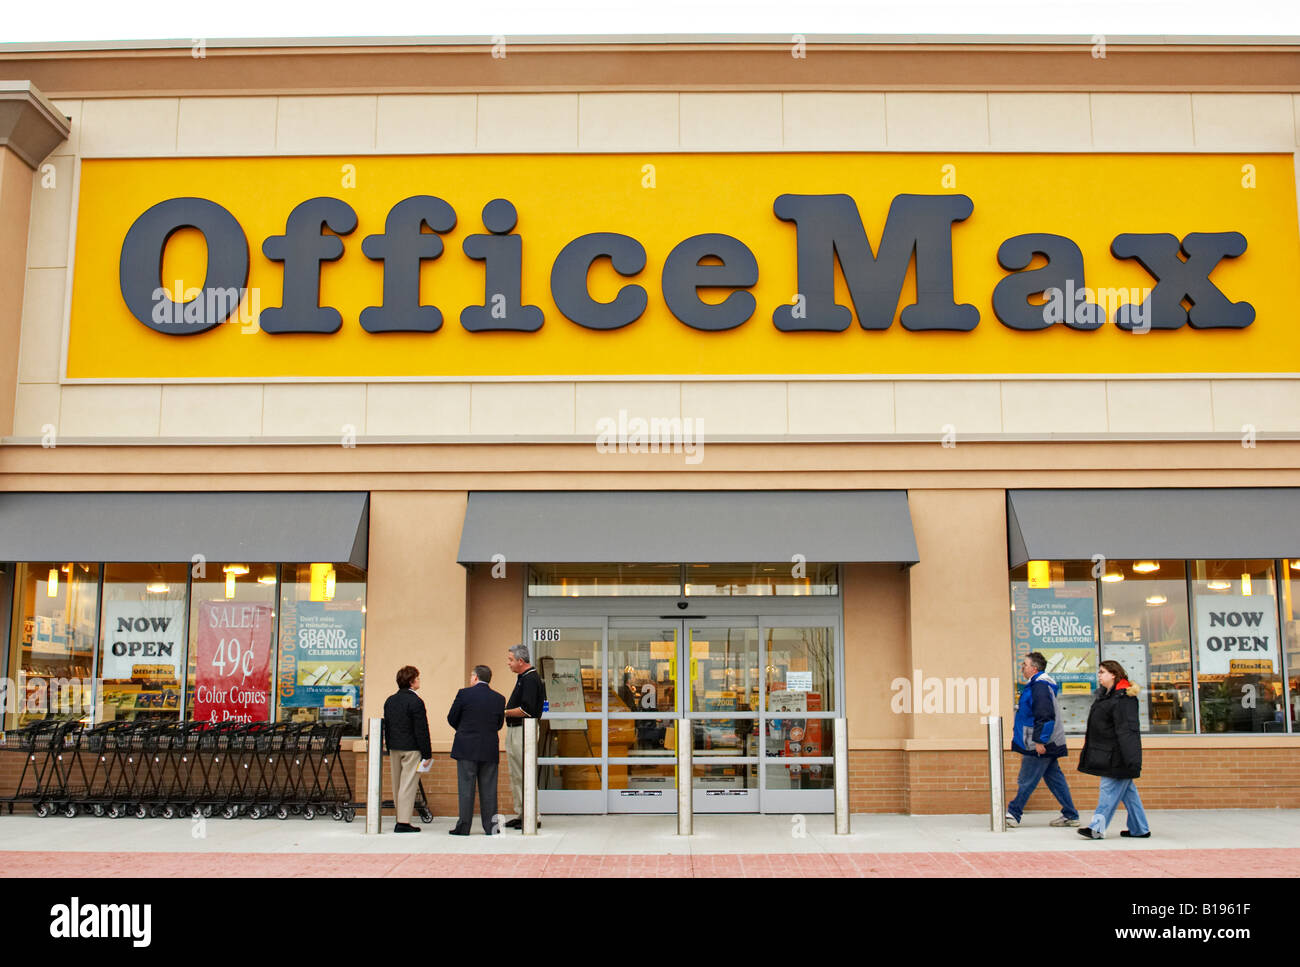 Events Algonquin Illinois Exterior Of Officemax Retail Store In